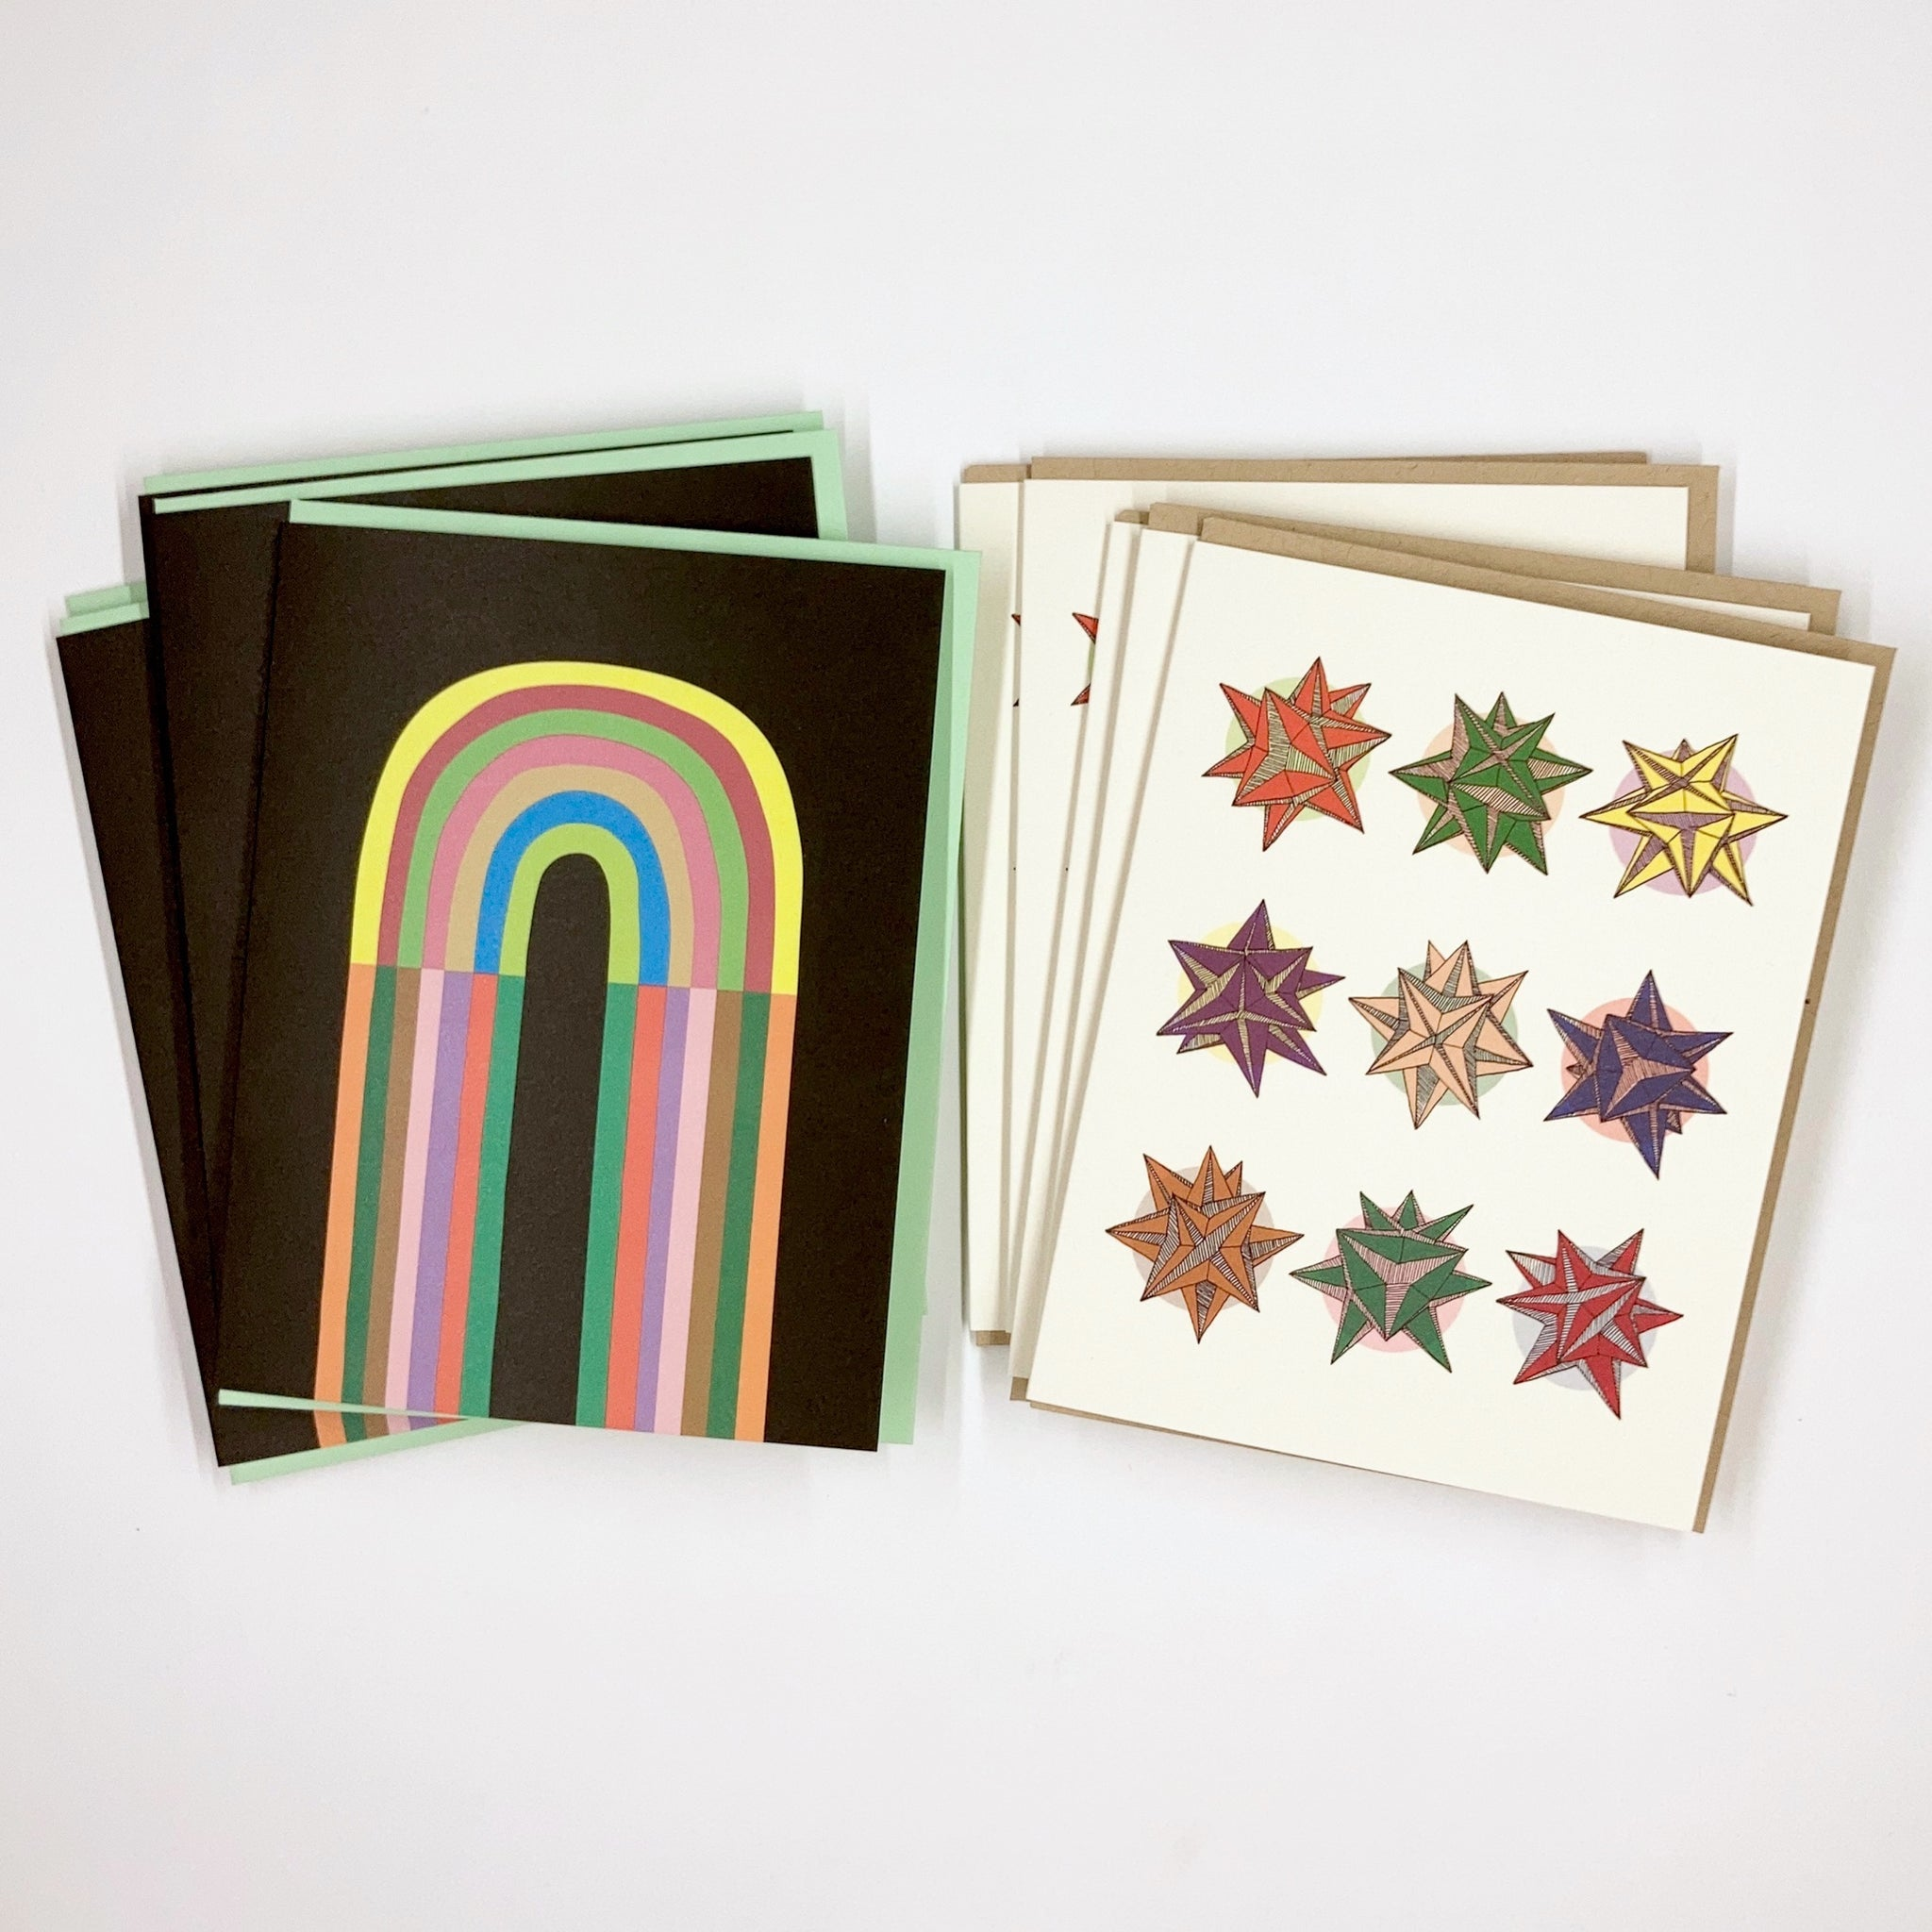 Stars & Rainbows 10 Card Set